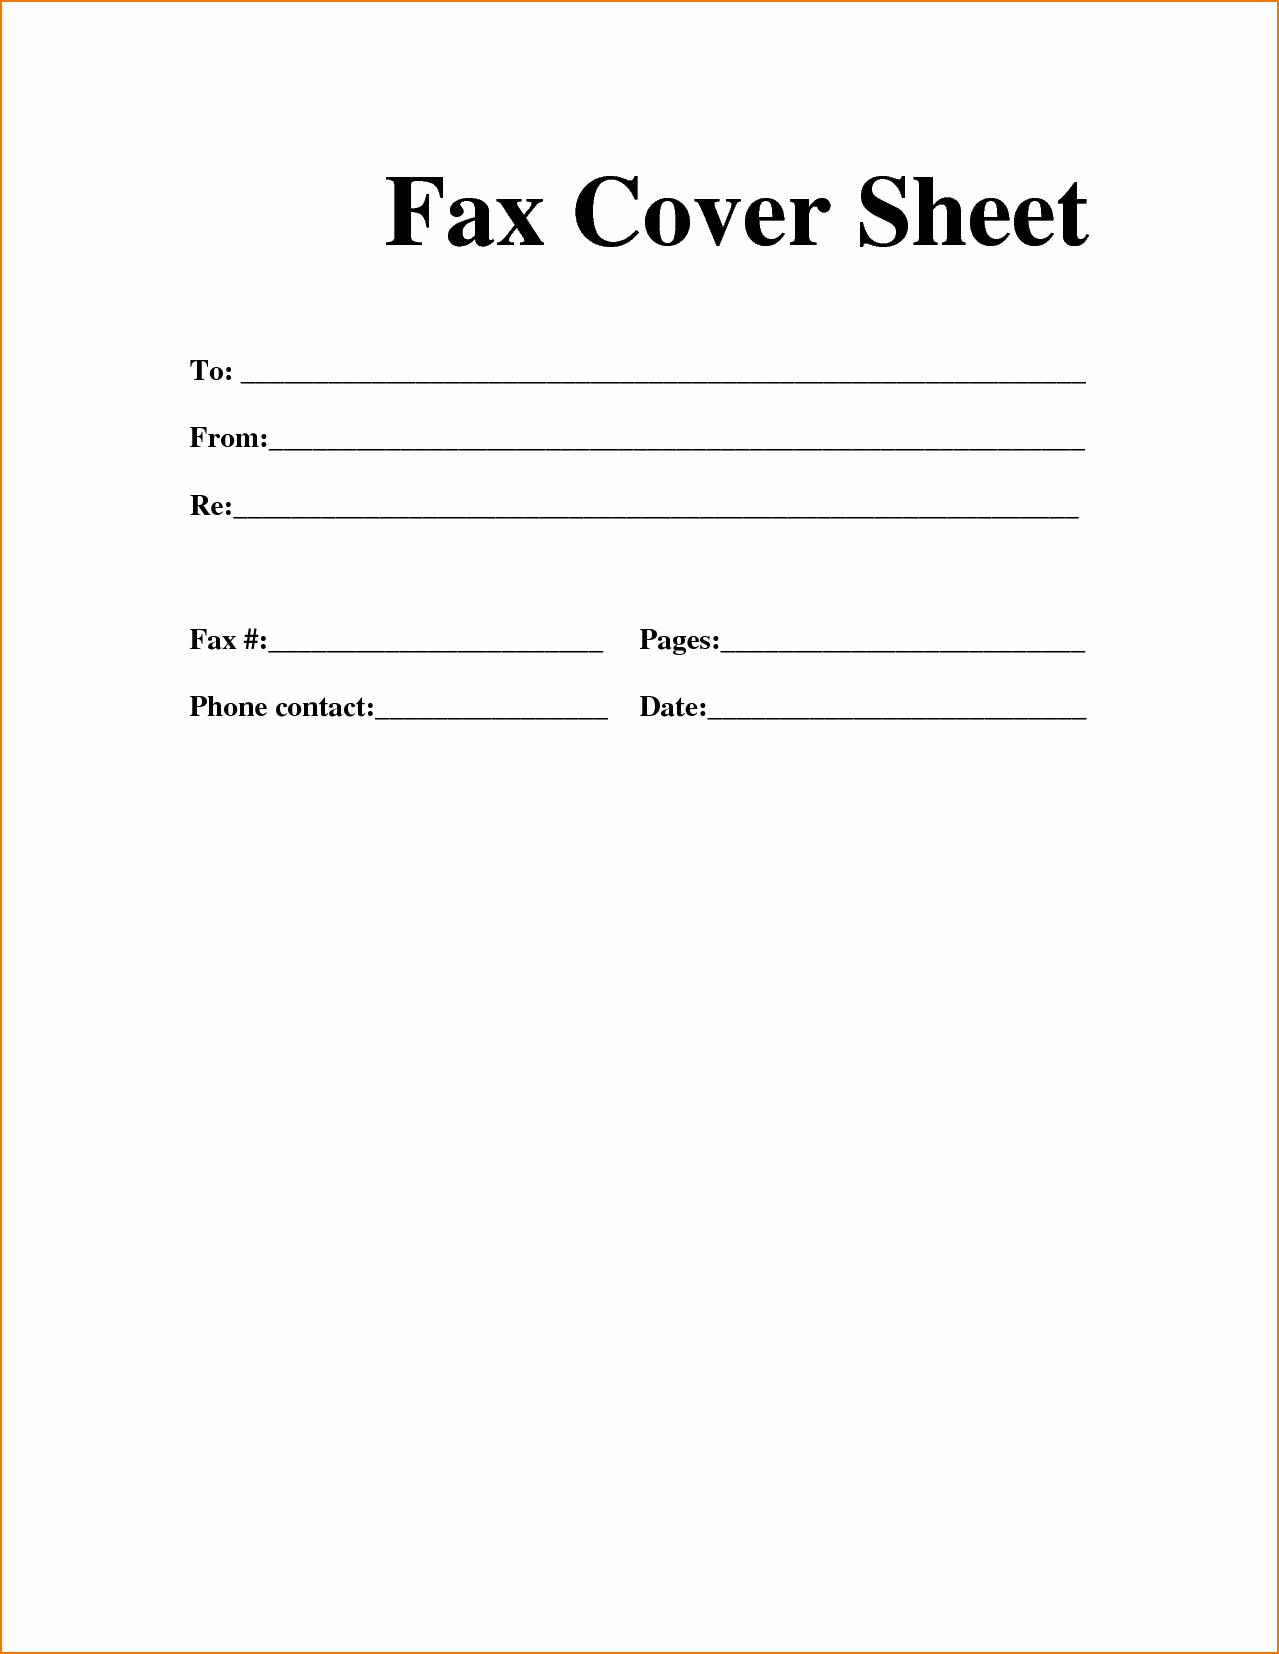 Fax Cover Sheet format Unique Sample Personal Fax Cover Sheet Template In 2019